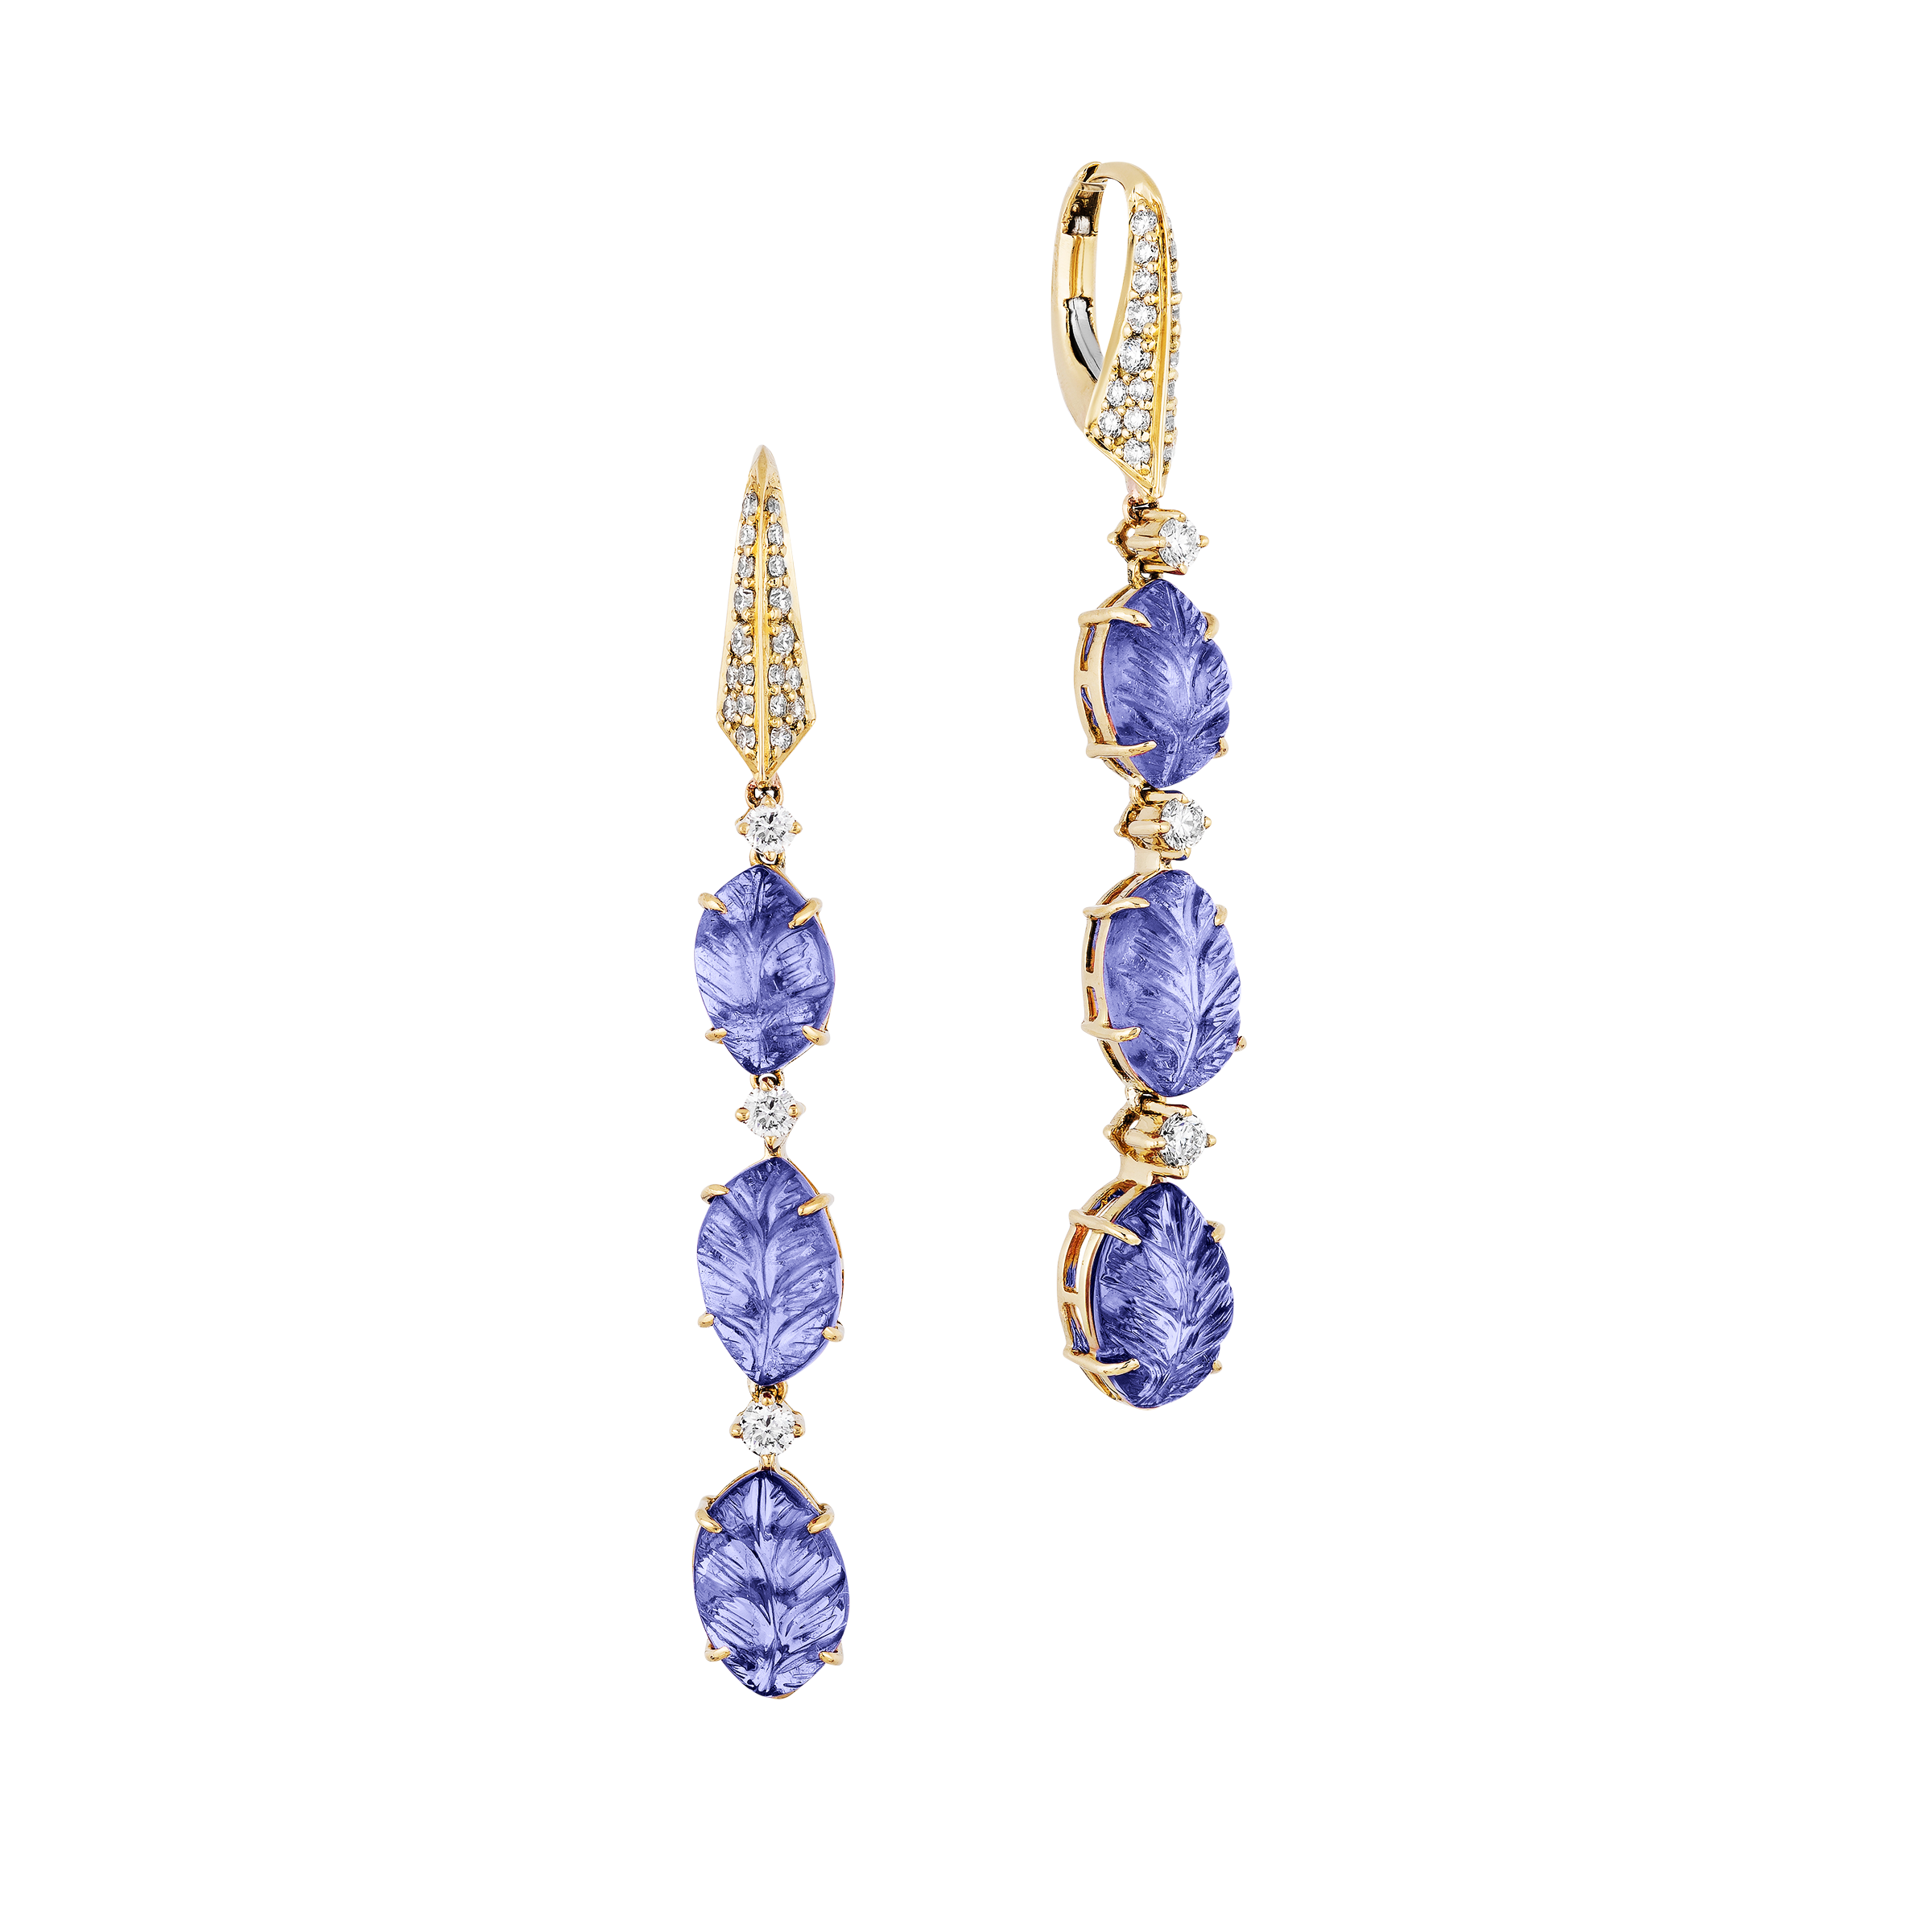 a-pair-of-carved-tanzanite-leaf-earrings-a621